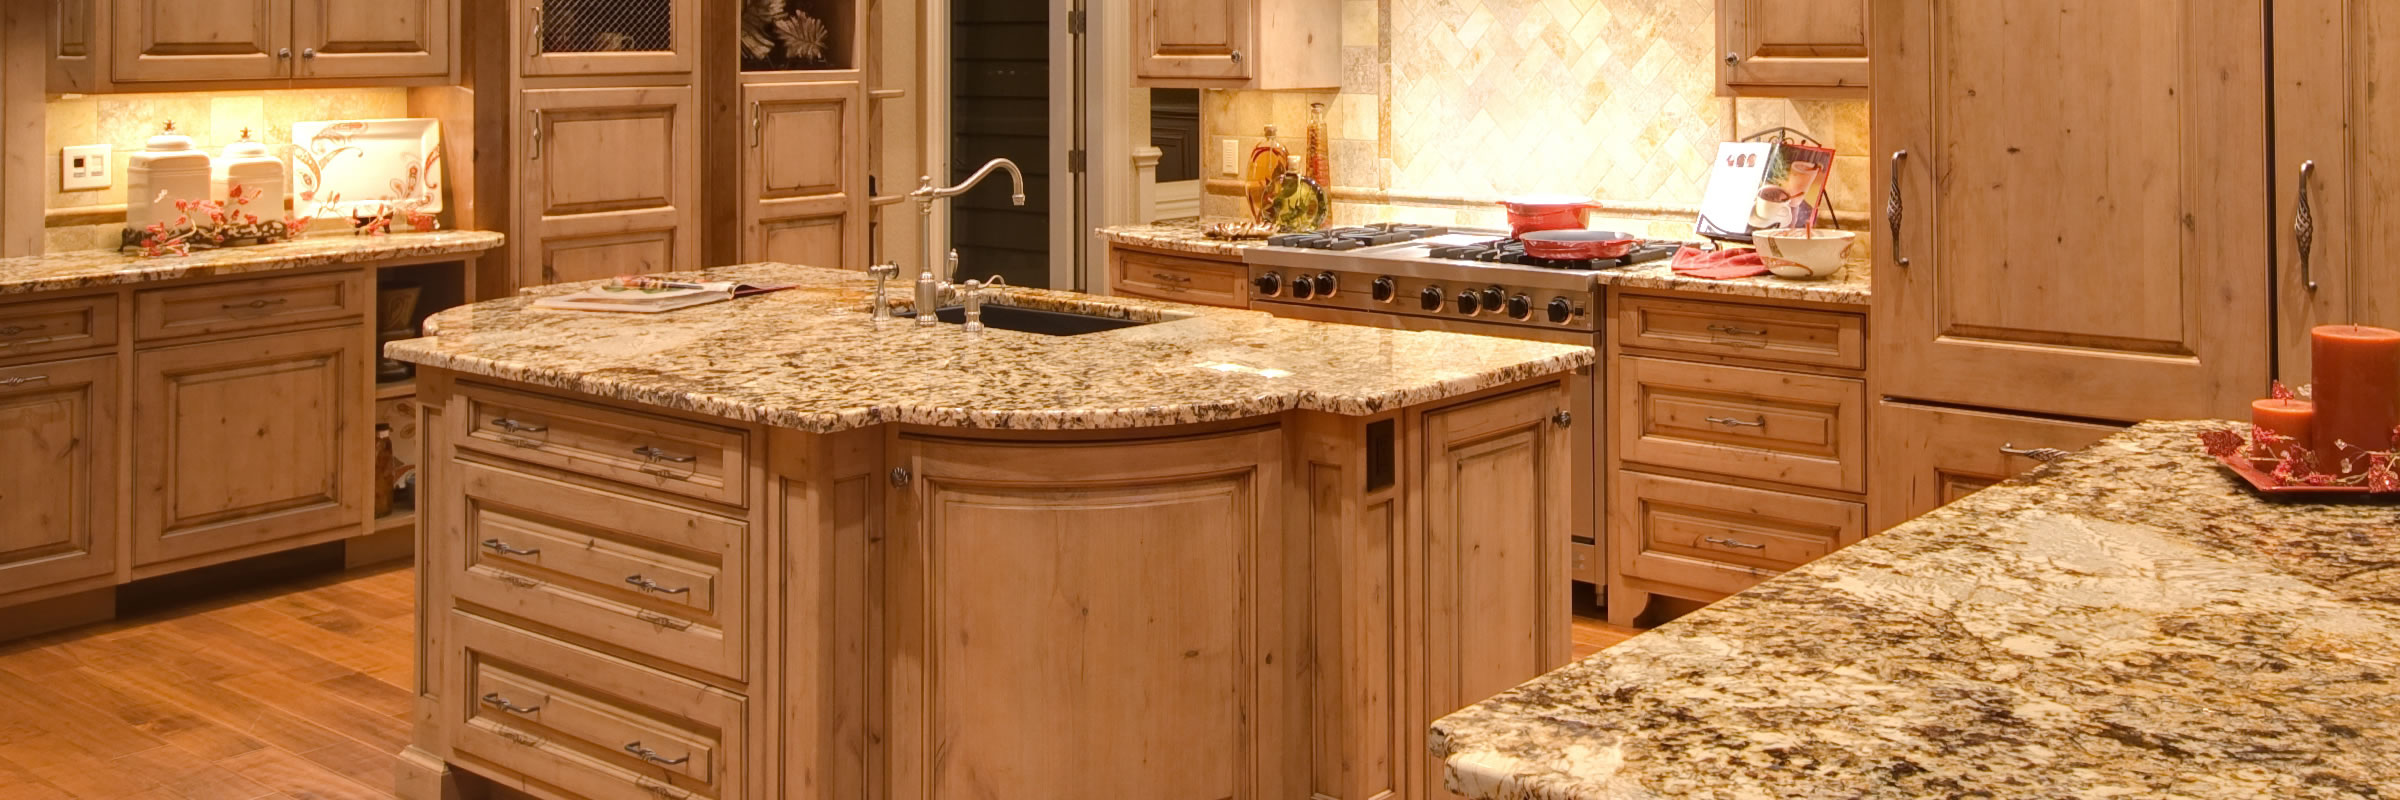 quartz natural countertop this splendid vanity must stone your me where know why buy for near bathroom countertops to tops granite suited ideas engineered resort